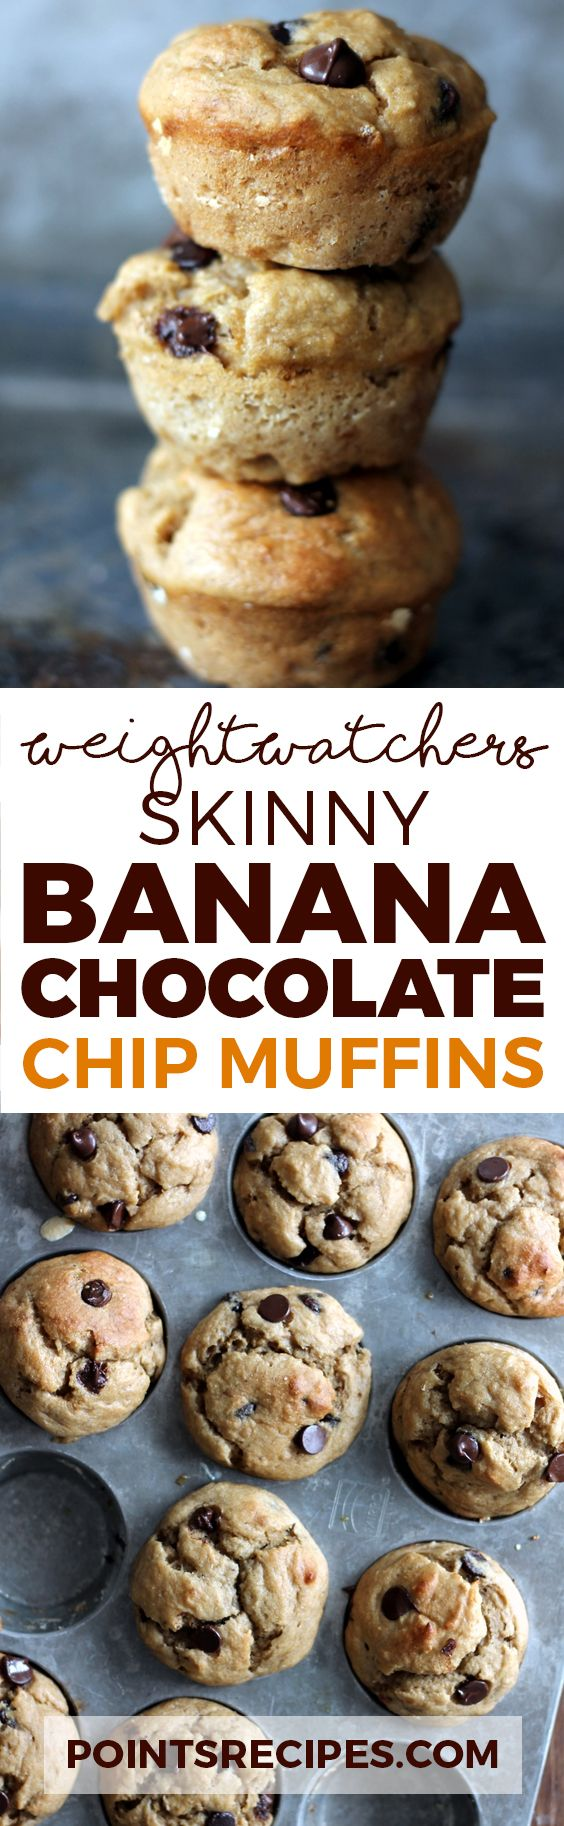 30 minute Skinny Banana Chocolate Chip Muffins (Weight Watchers SmartPoints)